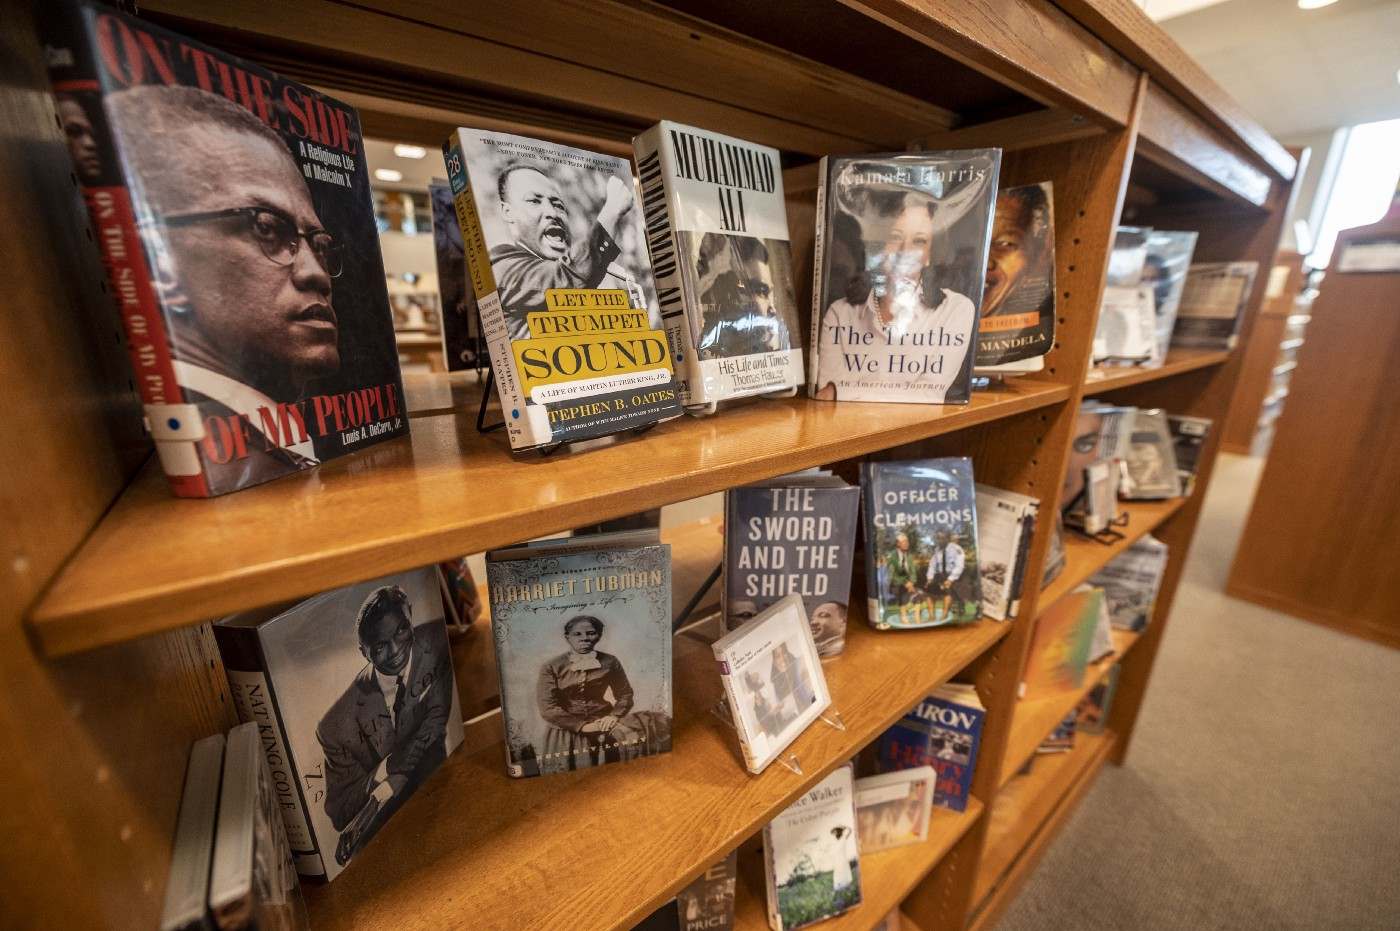 A black history book display at a library.